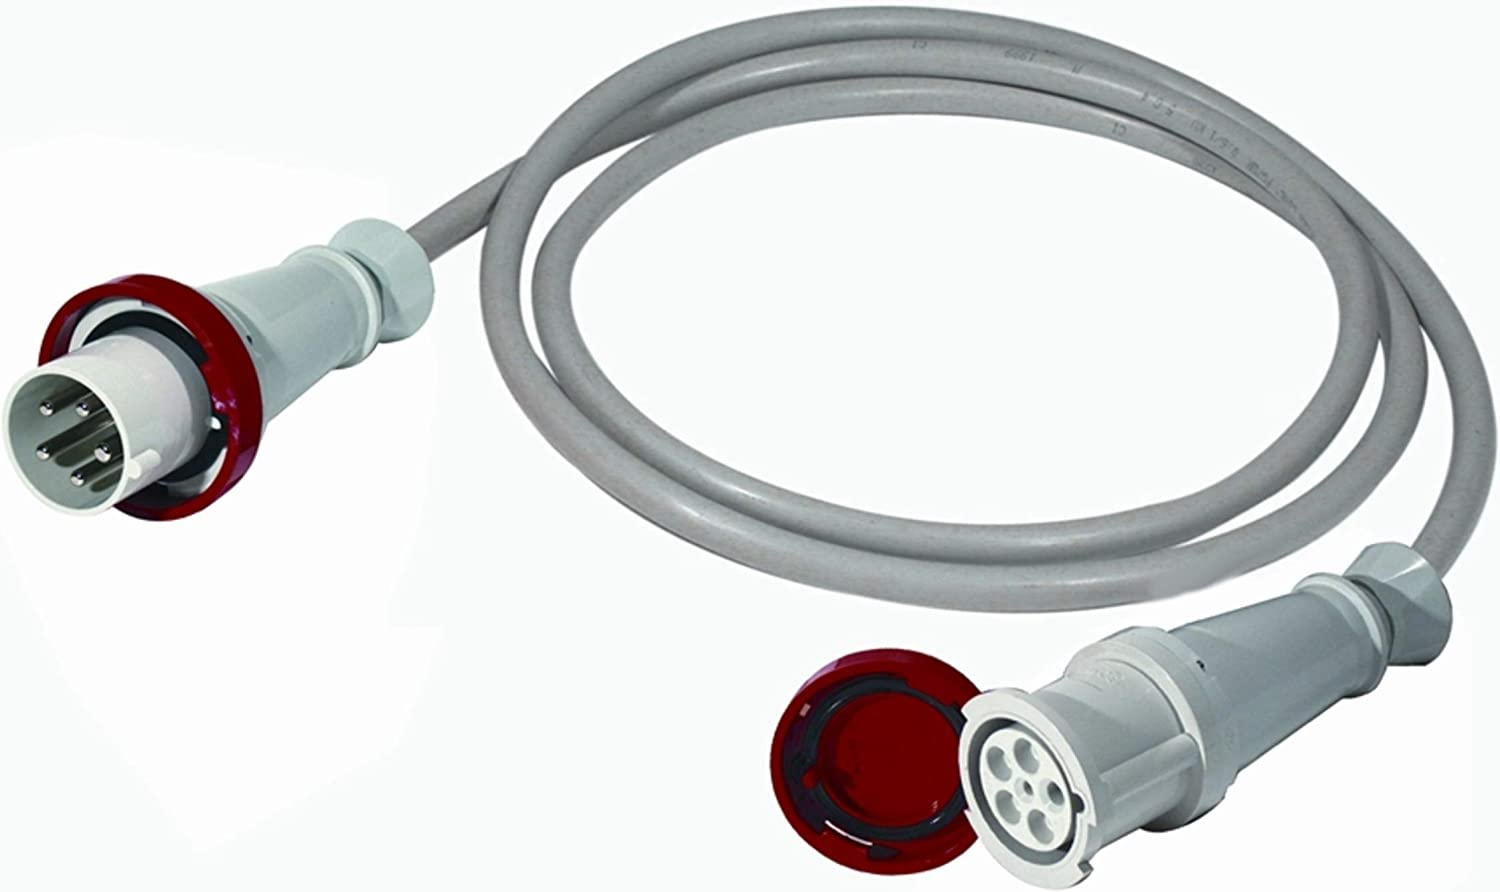 Quik Loc Stage And Ranking TOP7 Studio S 1256-10 NEW Speaker Cable